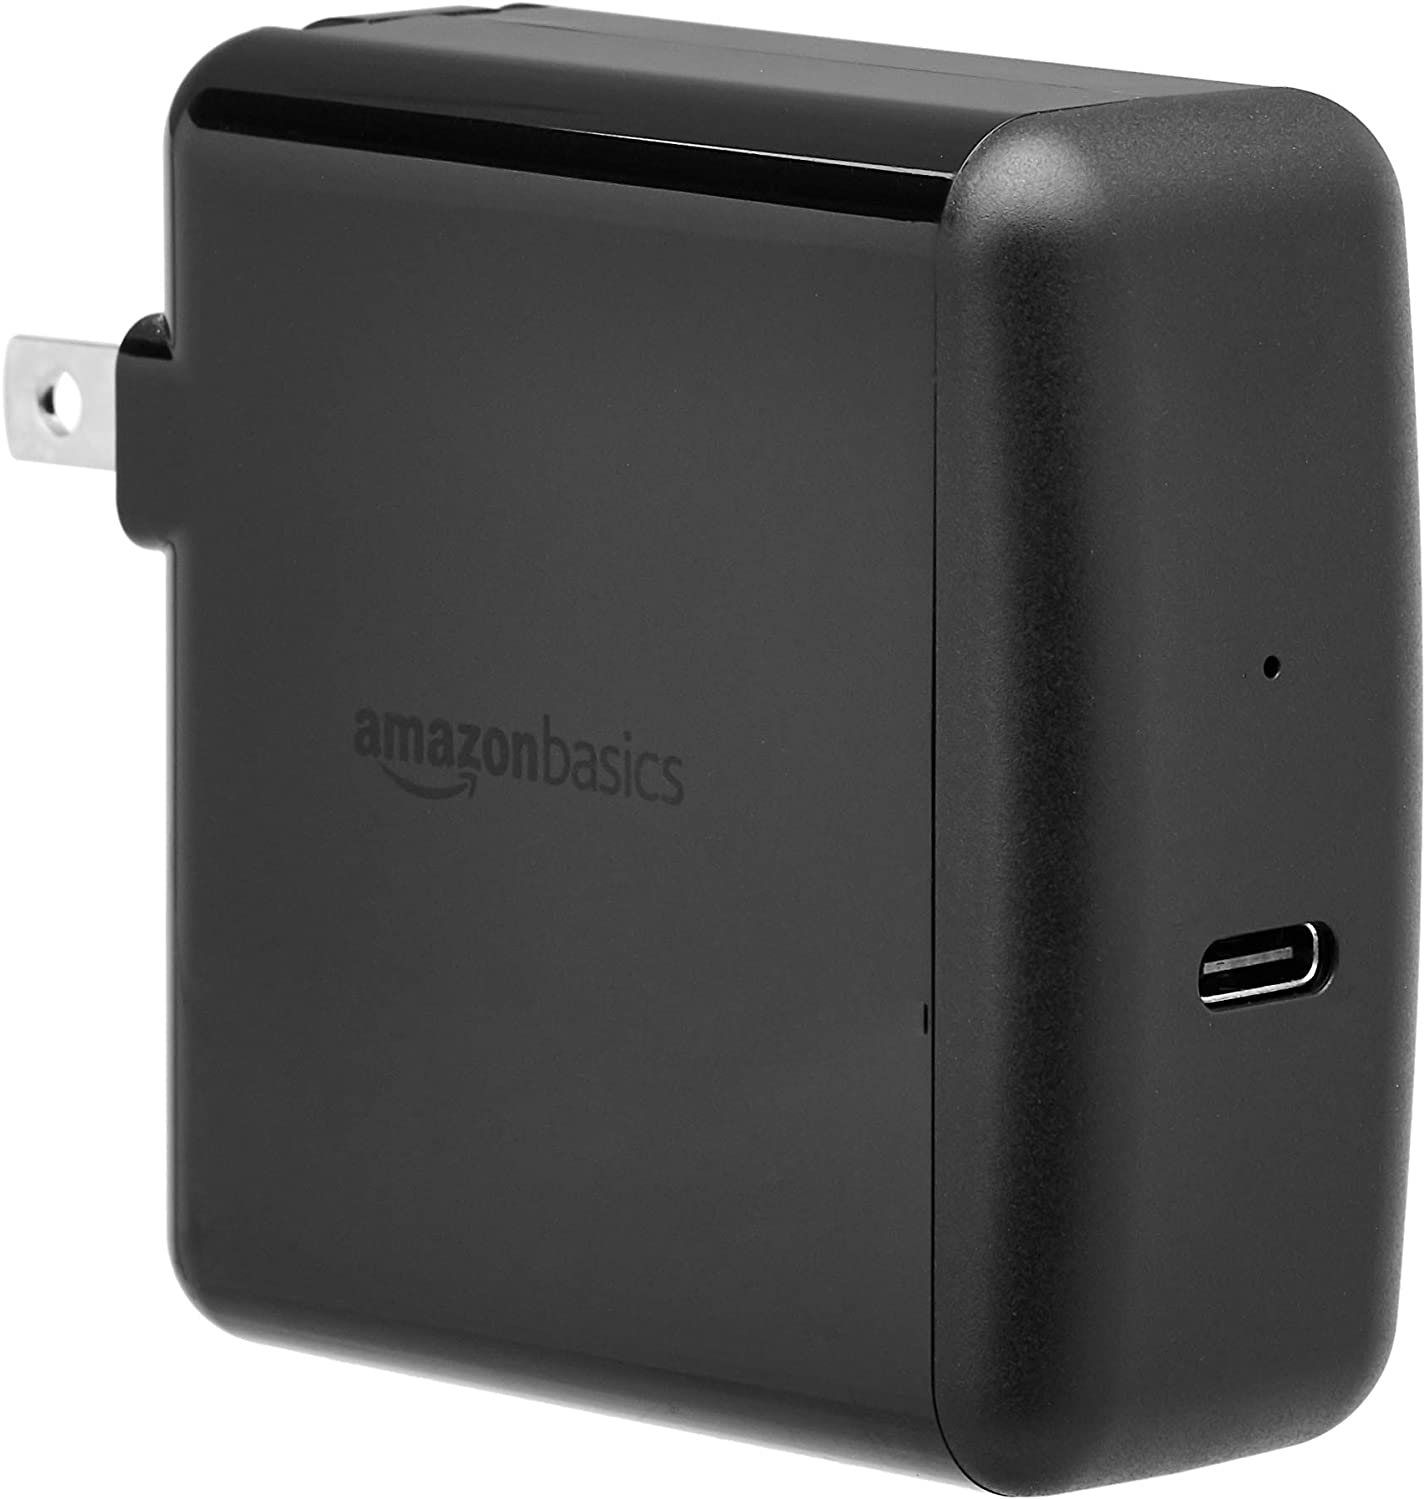 AmazonBasics 65W One-Port USB-C 3.0 Wall Charger for Laptops, Tablets and Phones - Black